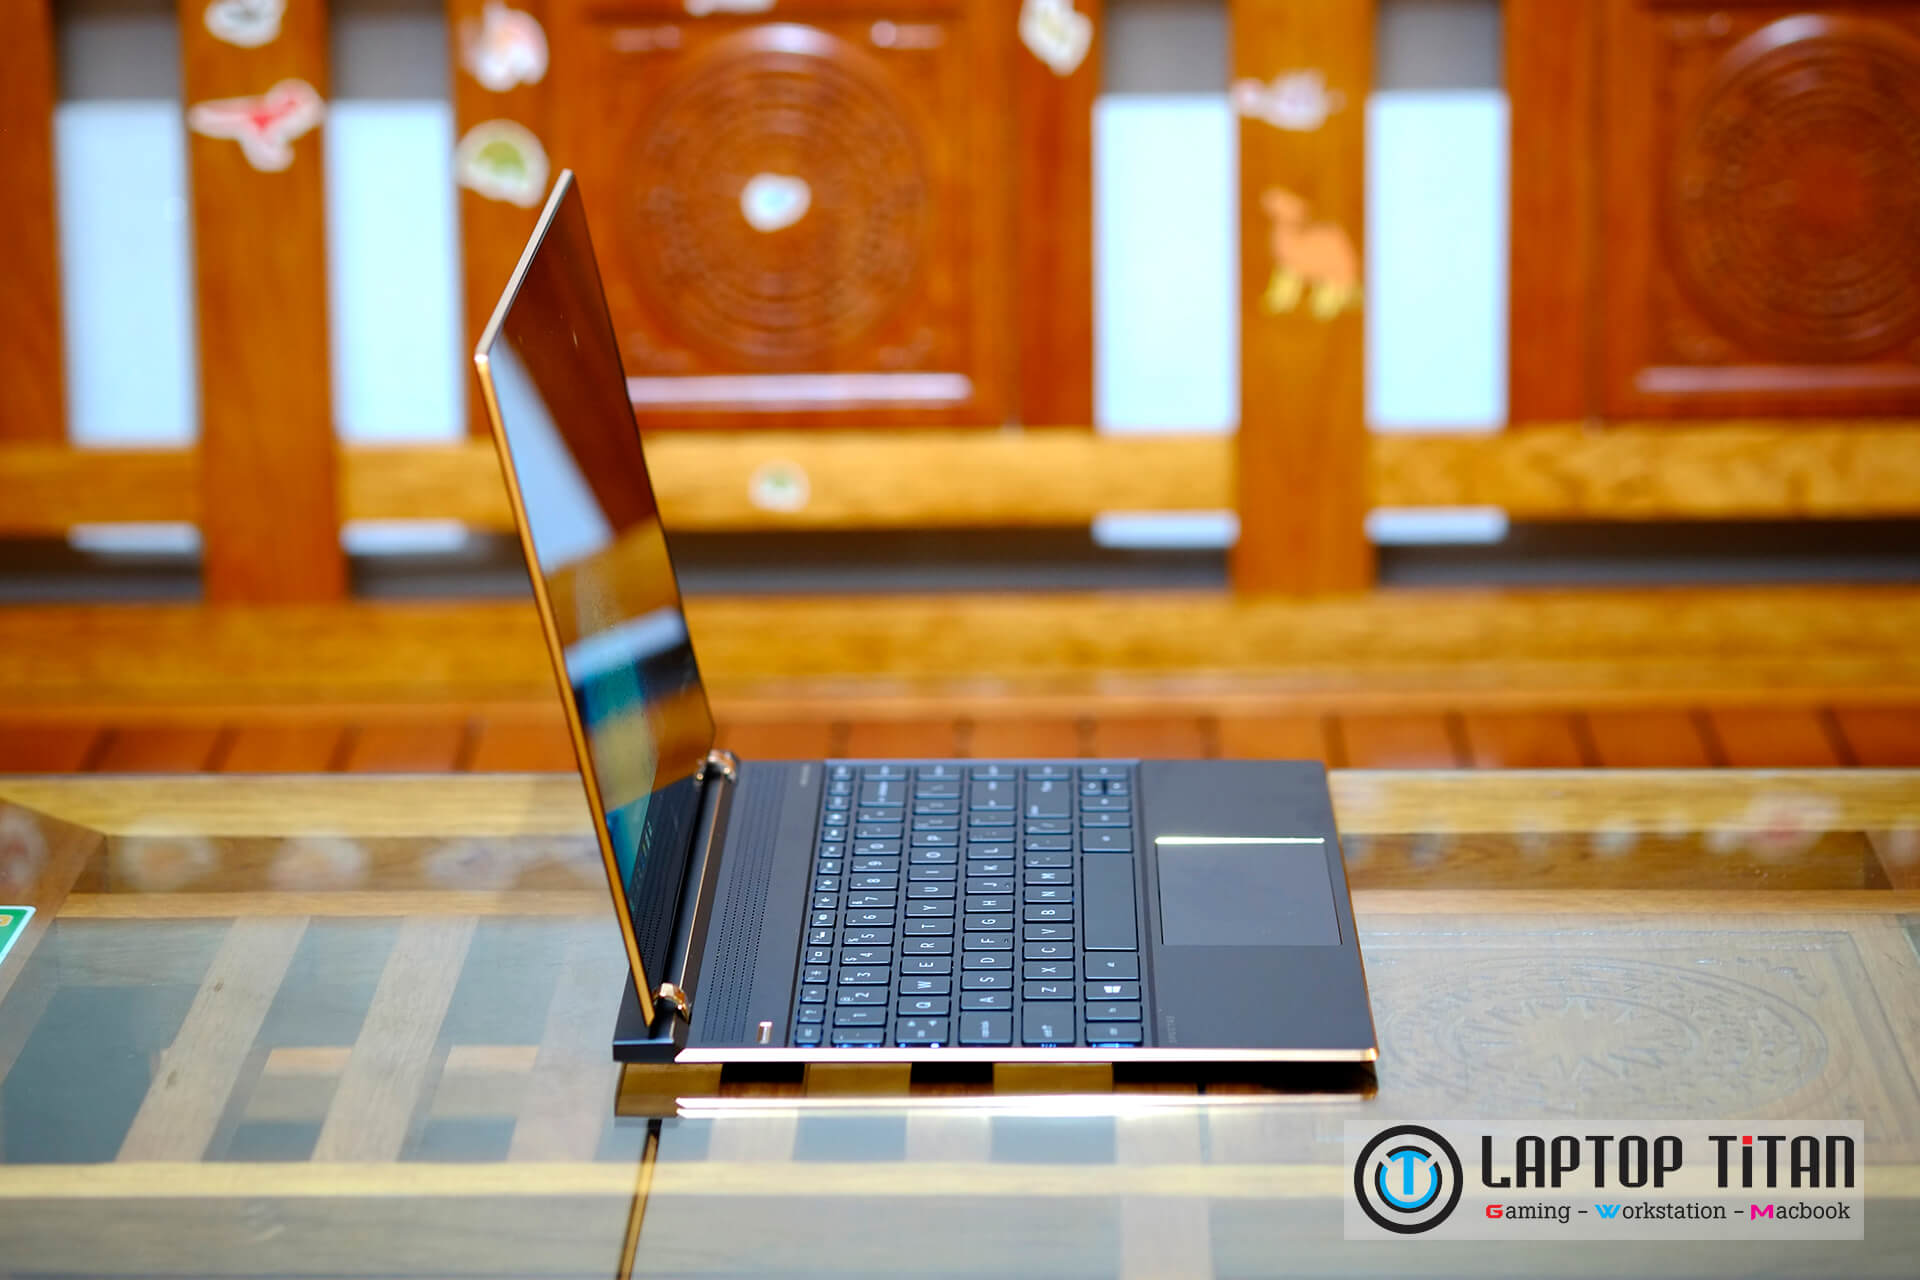 "HP Spectre 13 Core i7 8550u / 16GB / 512GB / 13.3"" UHD Touch / Black Gold / 1.1 Kg"